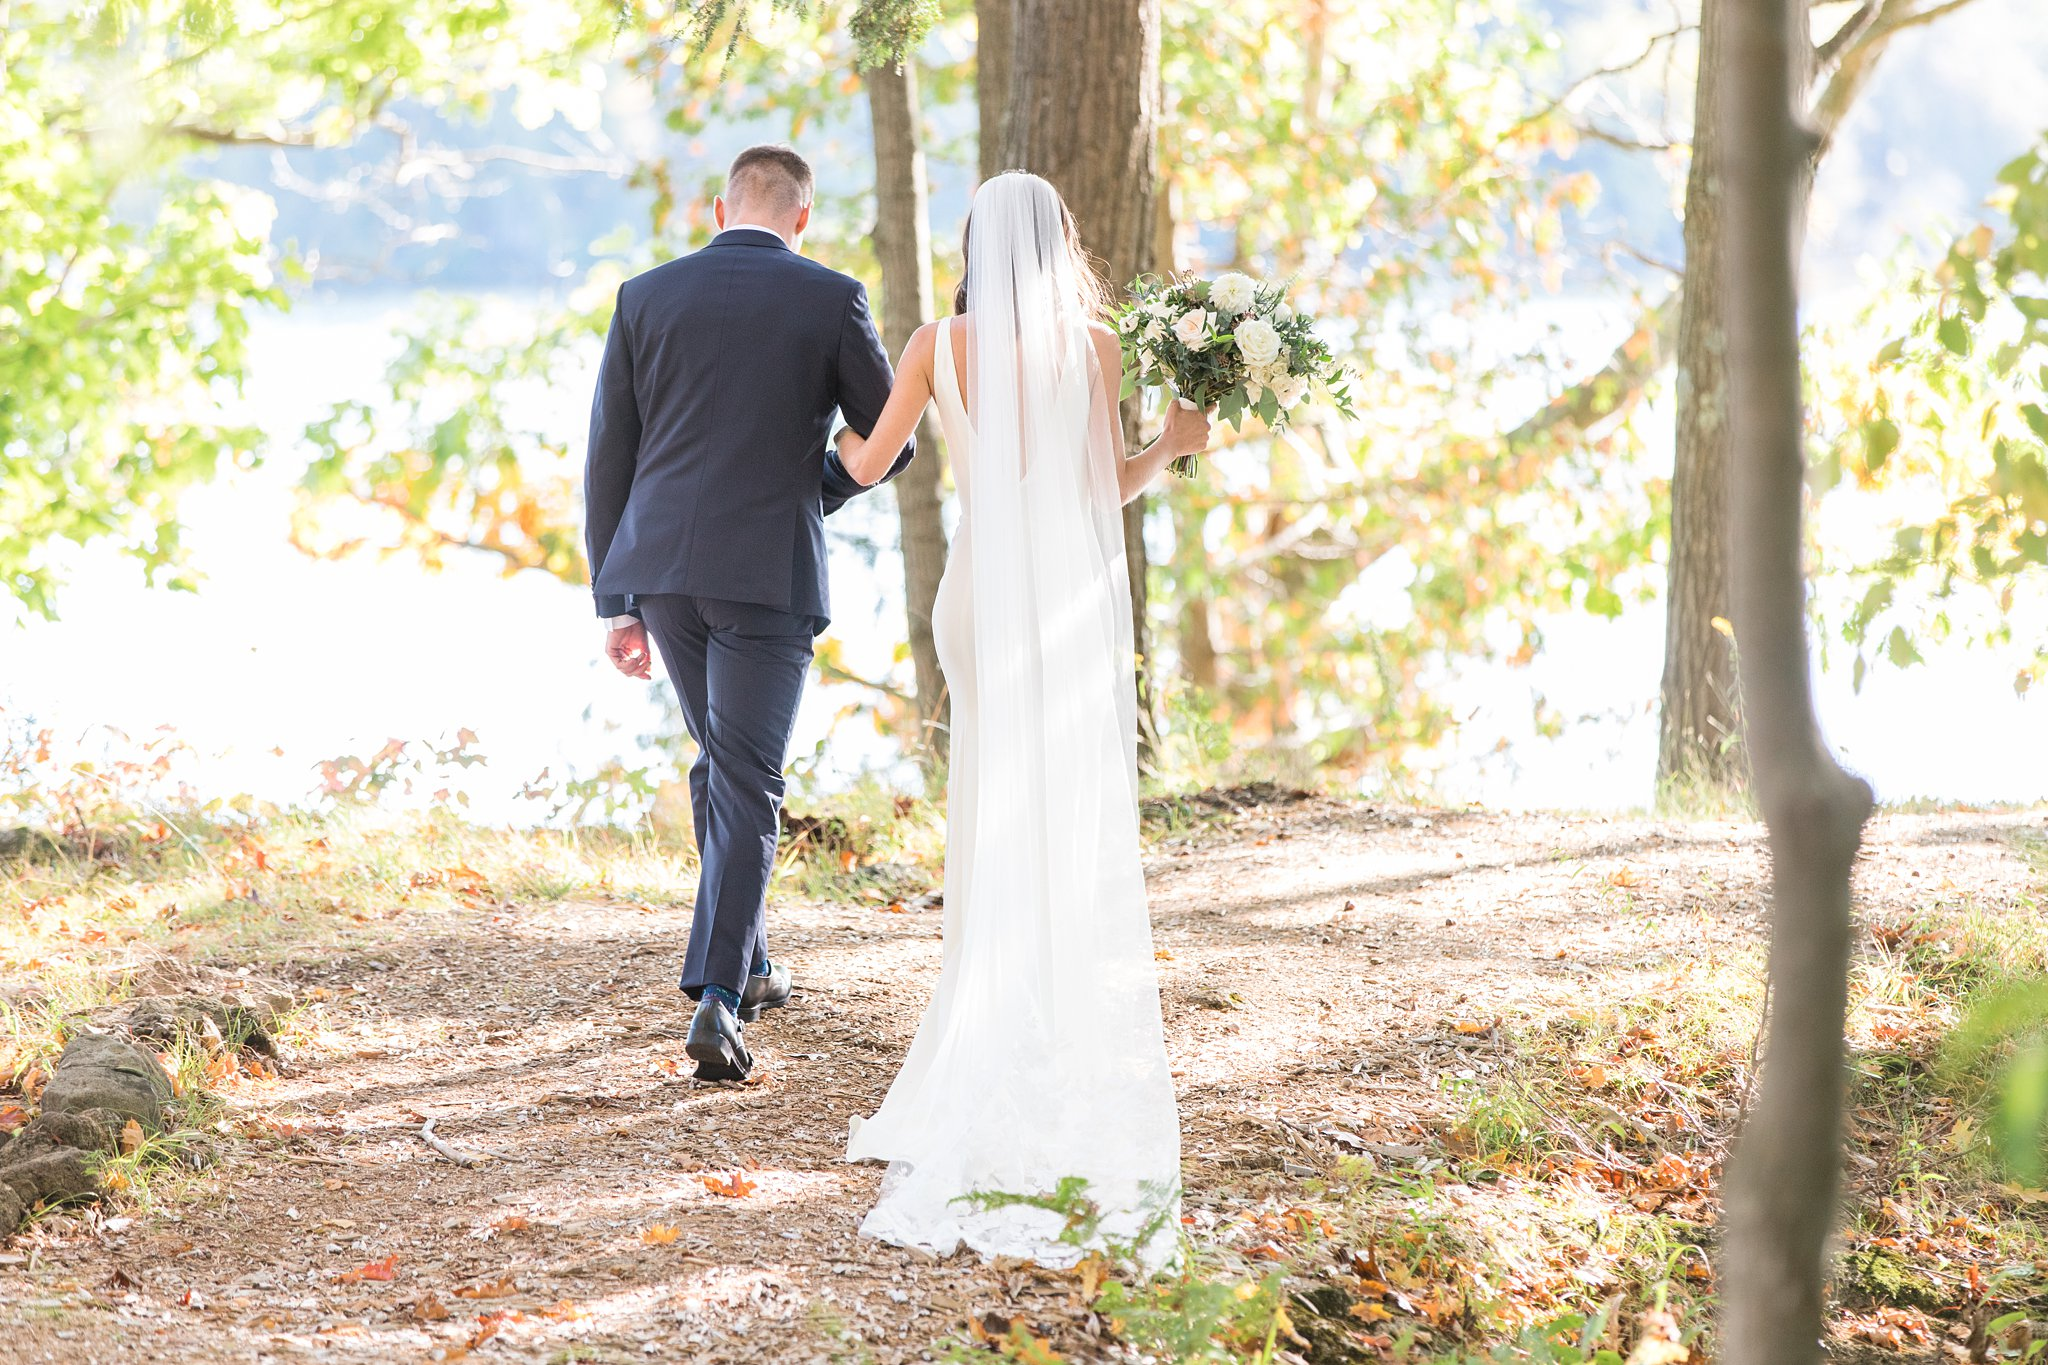 Pretty light as the bride and groom walk away from the ceremony, Opinicon Wedding Photos by Amy Pinder Photography